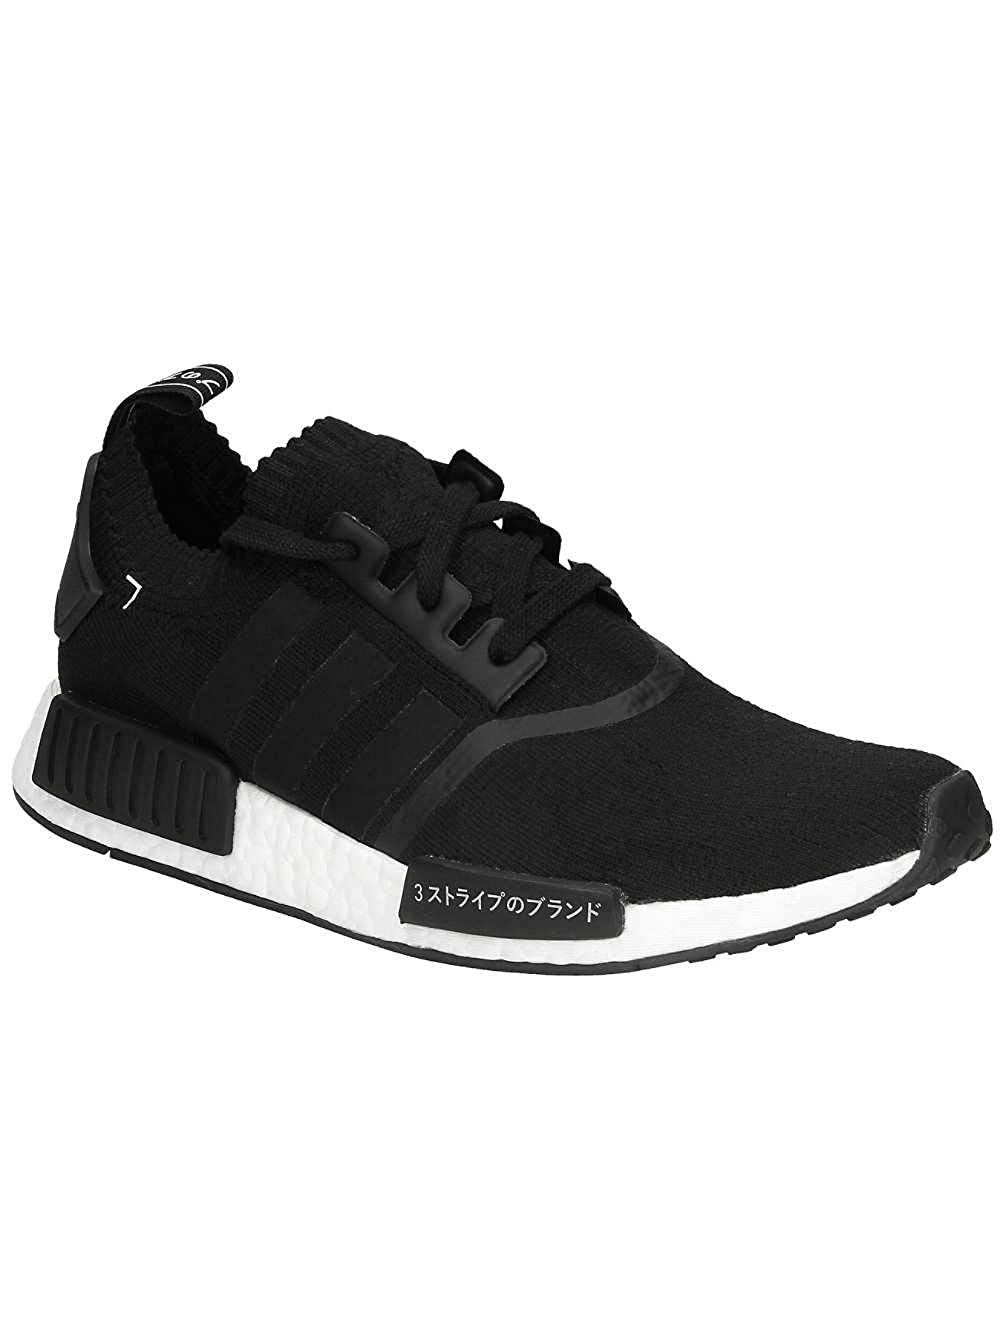 low priced 1c589 053e8 adidas NMD R1 Pk 'Japan Boost' - S81847 - Size 11 Black, White